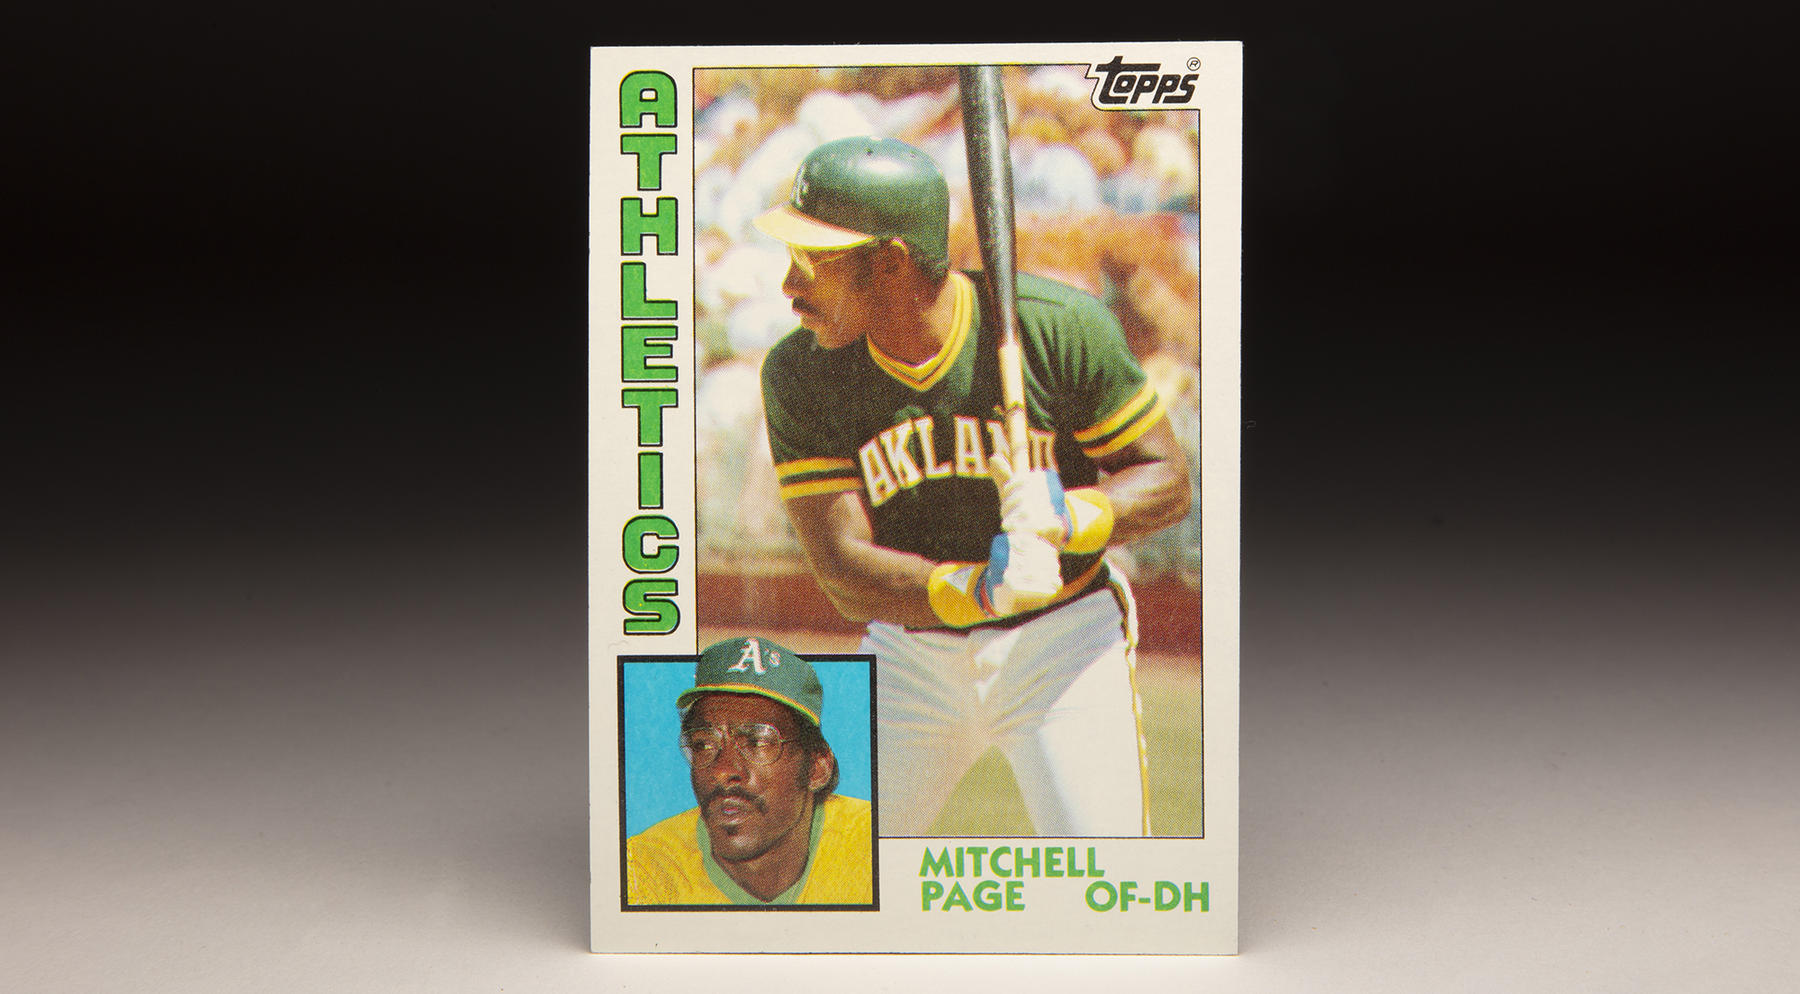 Mitchell Page's 1984 Topps card featured the Athletics' slugger in his classic left-handed stance. (Topps baseball card photographed by Milo Stewart Jr./National Baseball Hall of Fame and Museum)